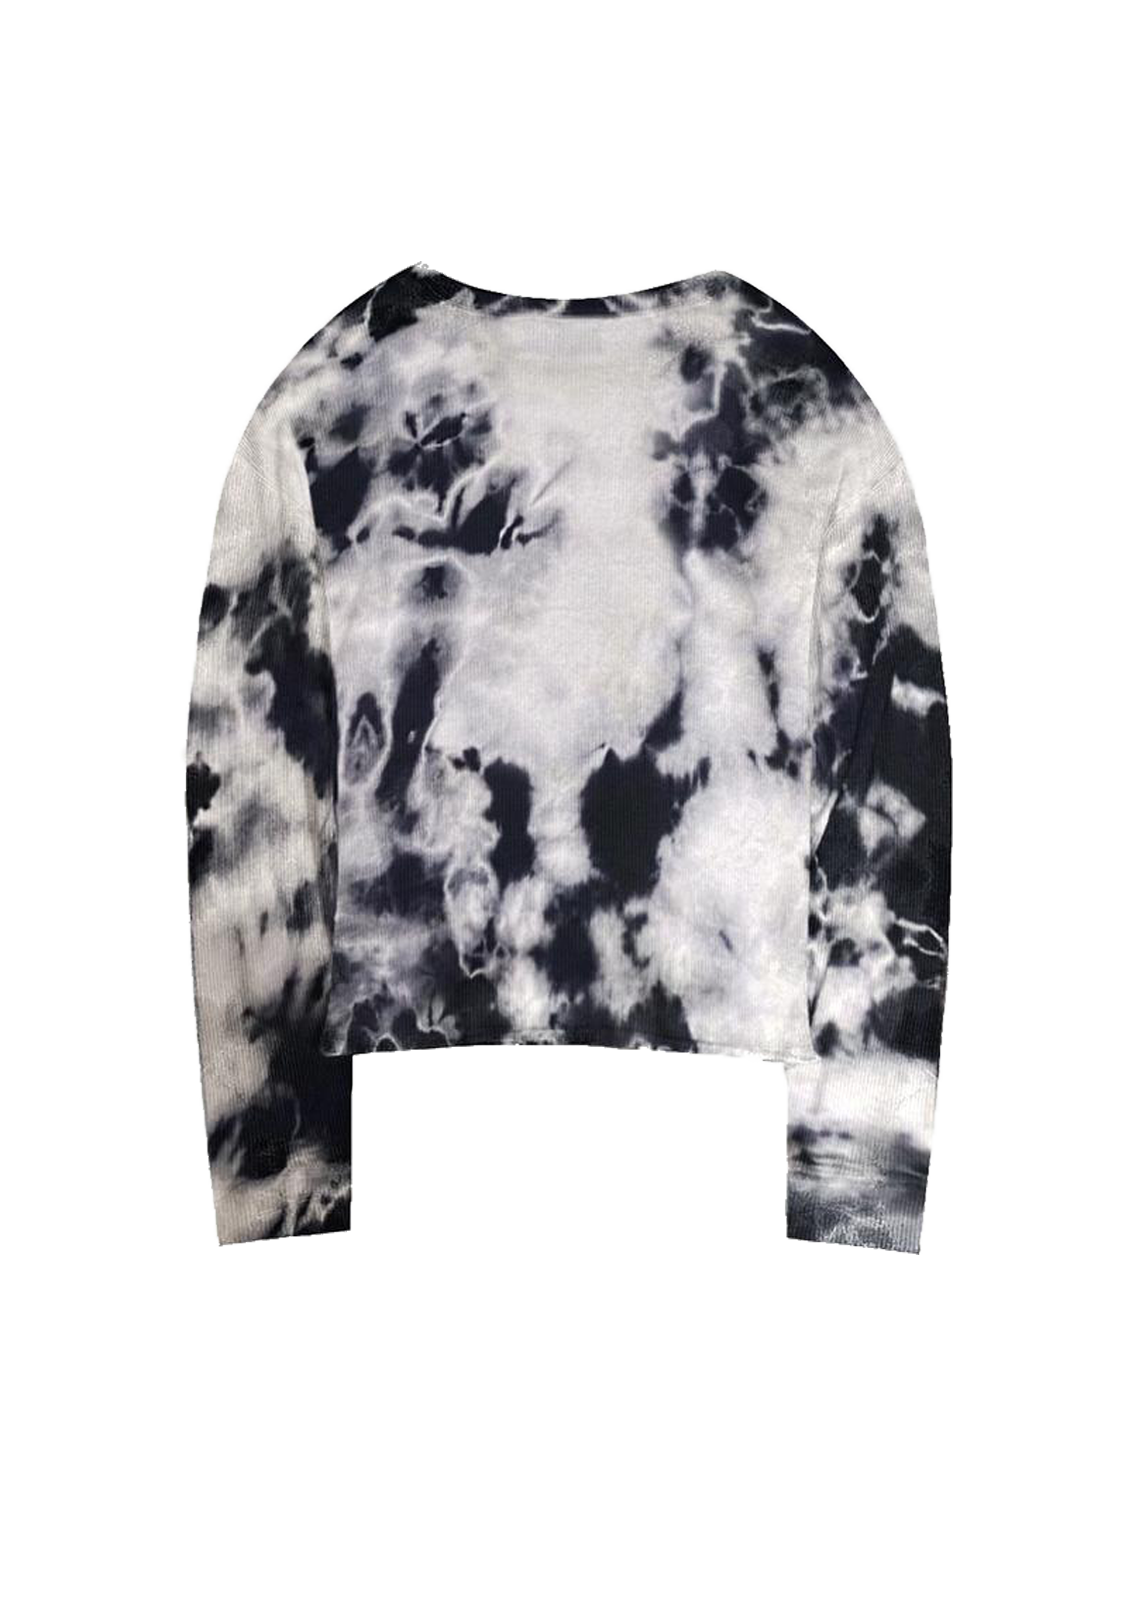 Tie Dye Thermal Long Sleeve - White/Black